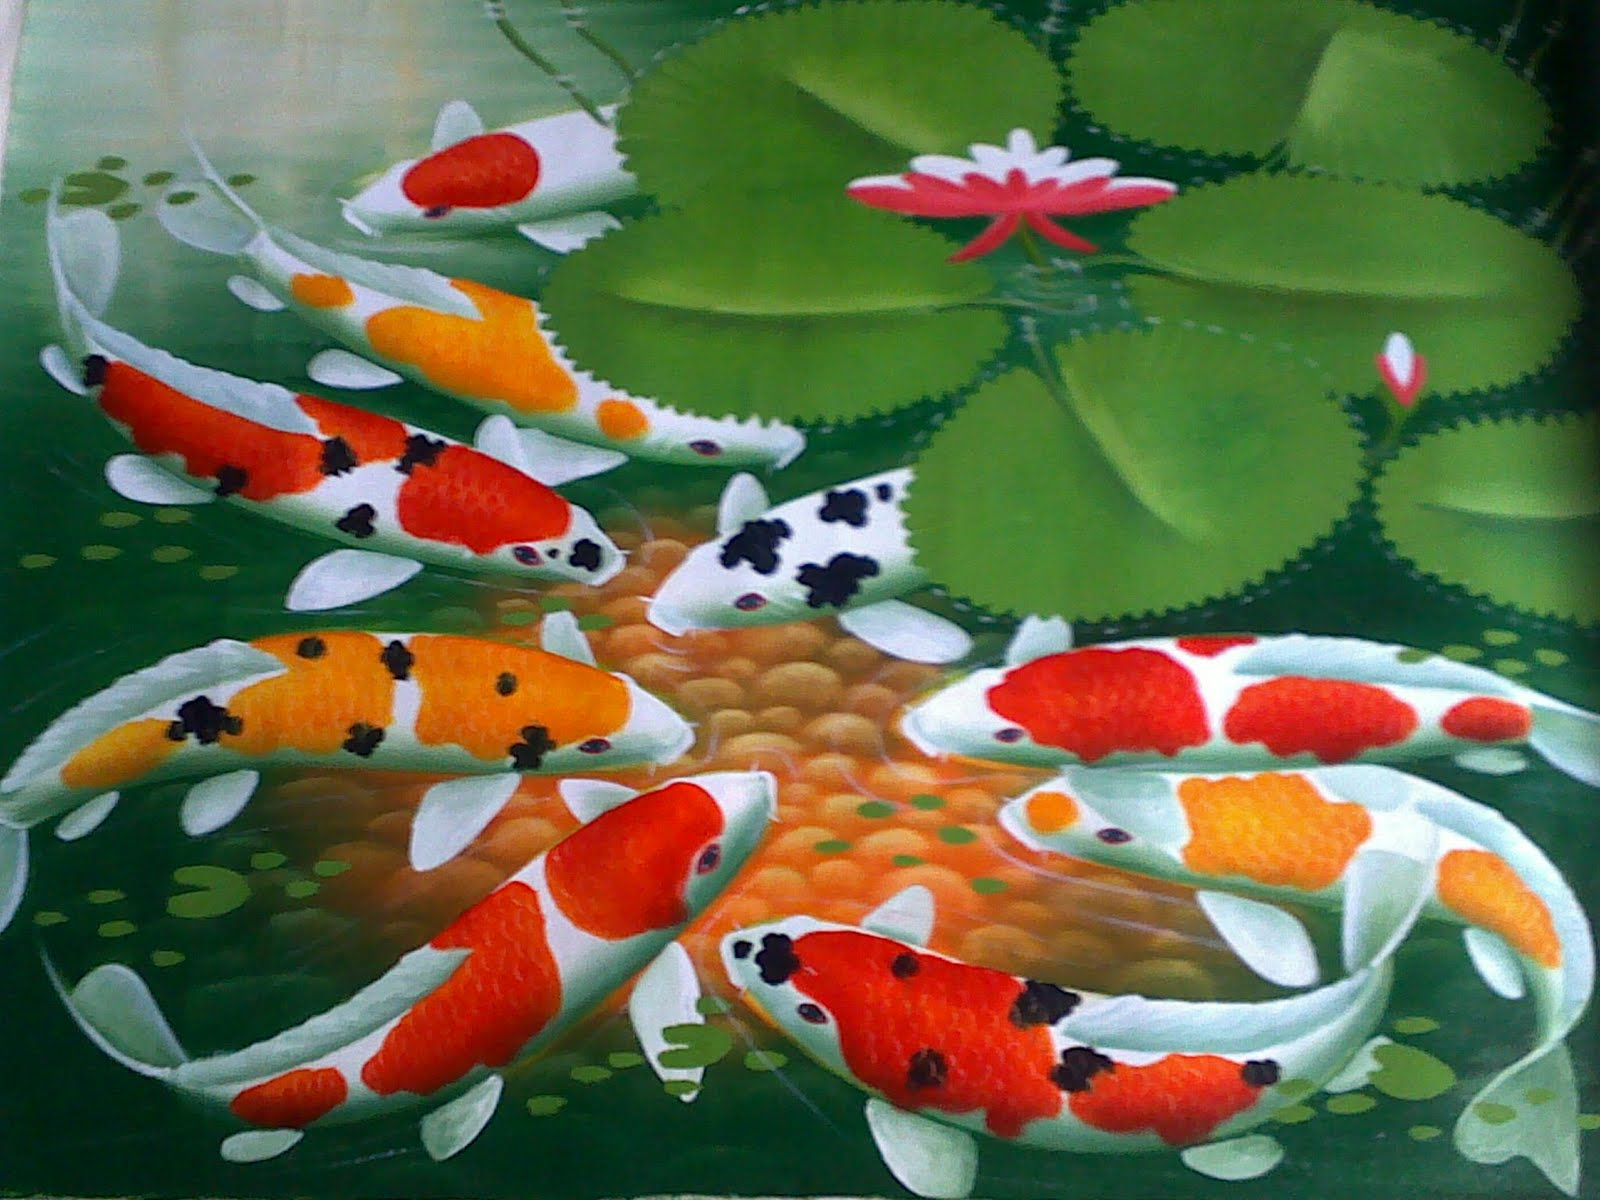 Download koi fish 7928 1600x1200 px high resolution for Koi fish size